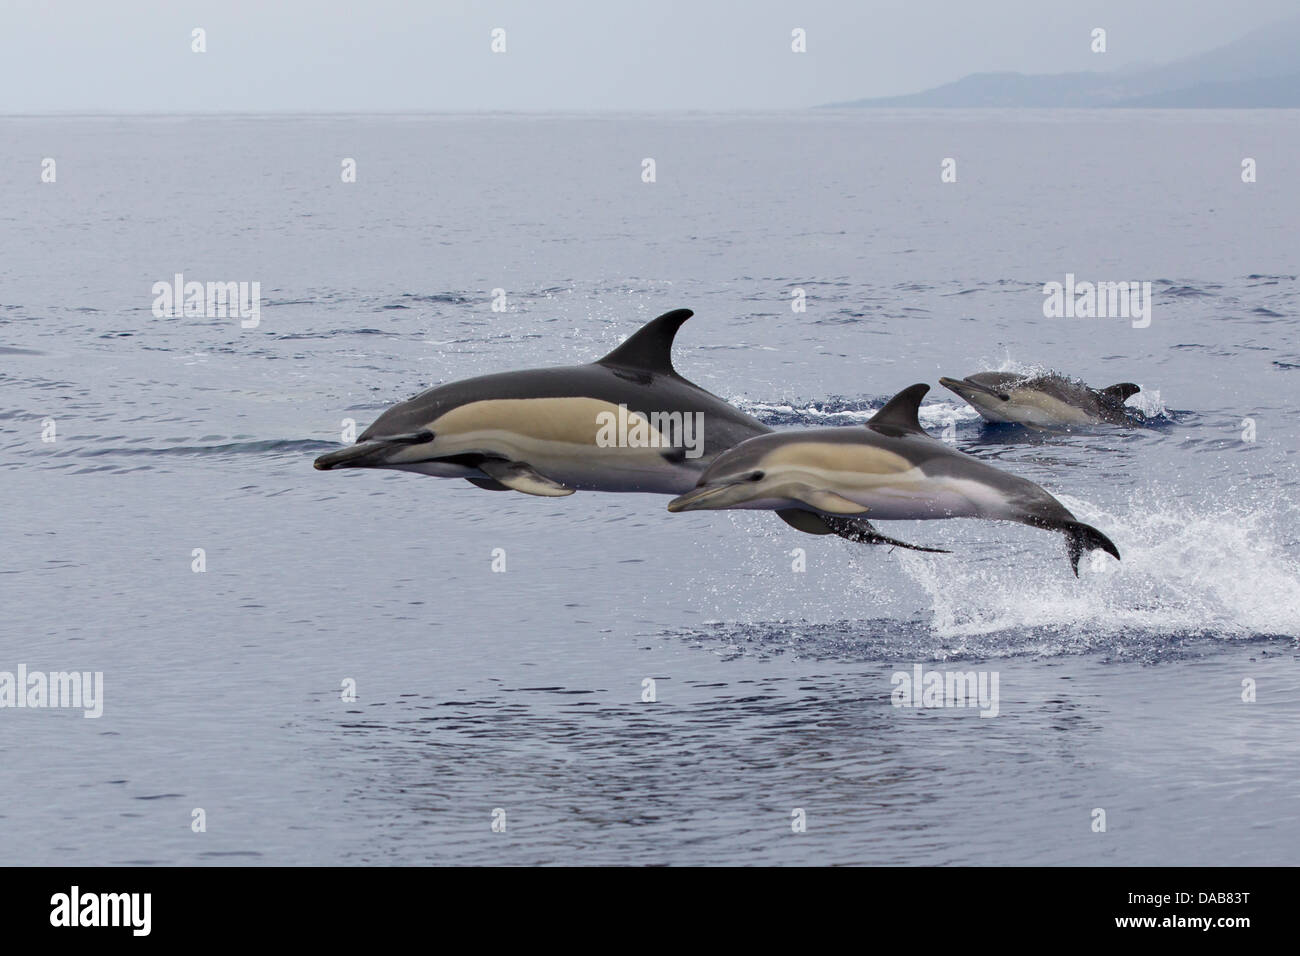 Gemeiner Delphine, Short-beaked Common Dolphins, Delphinus delphis,  calf leaping next to mother, Pico, Azores, - Stock Image